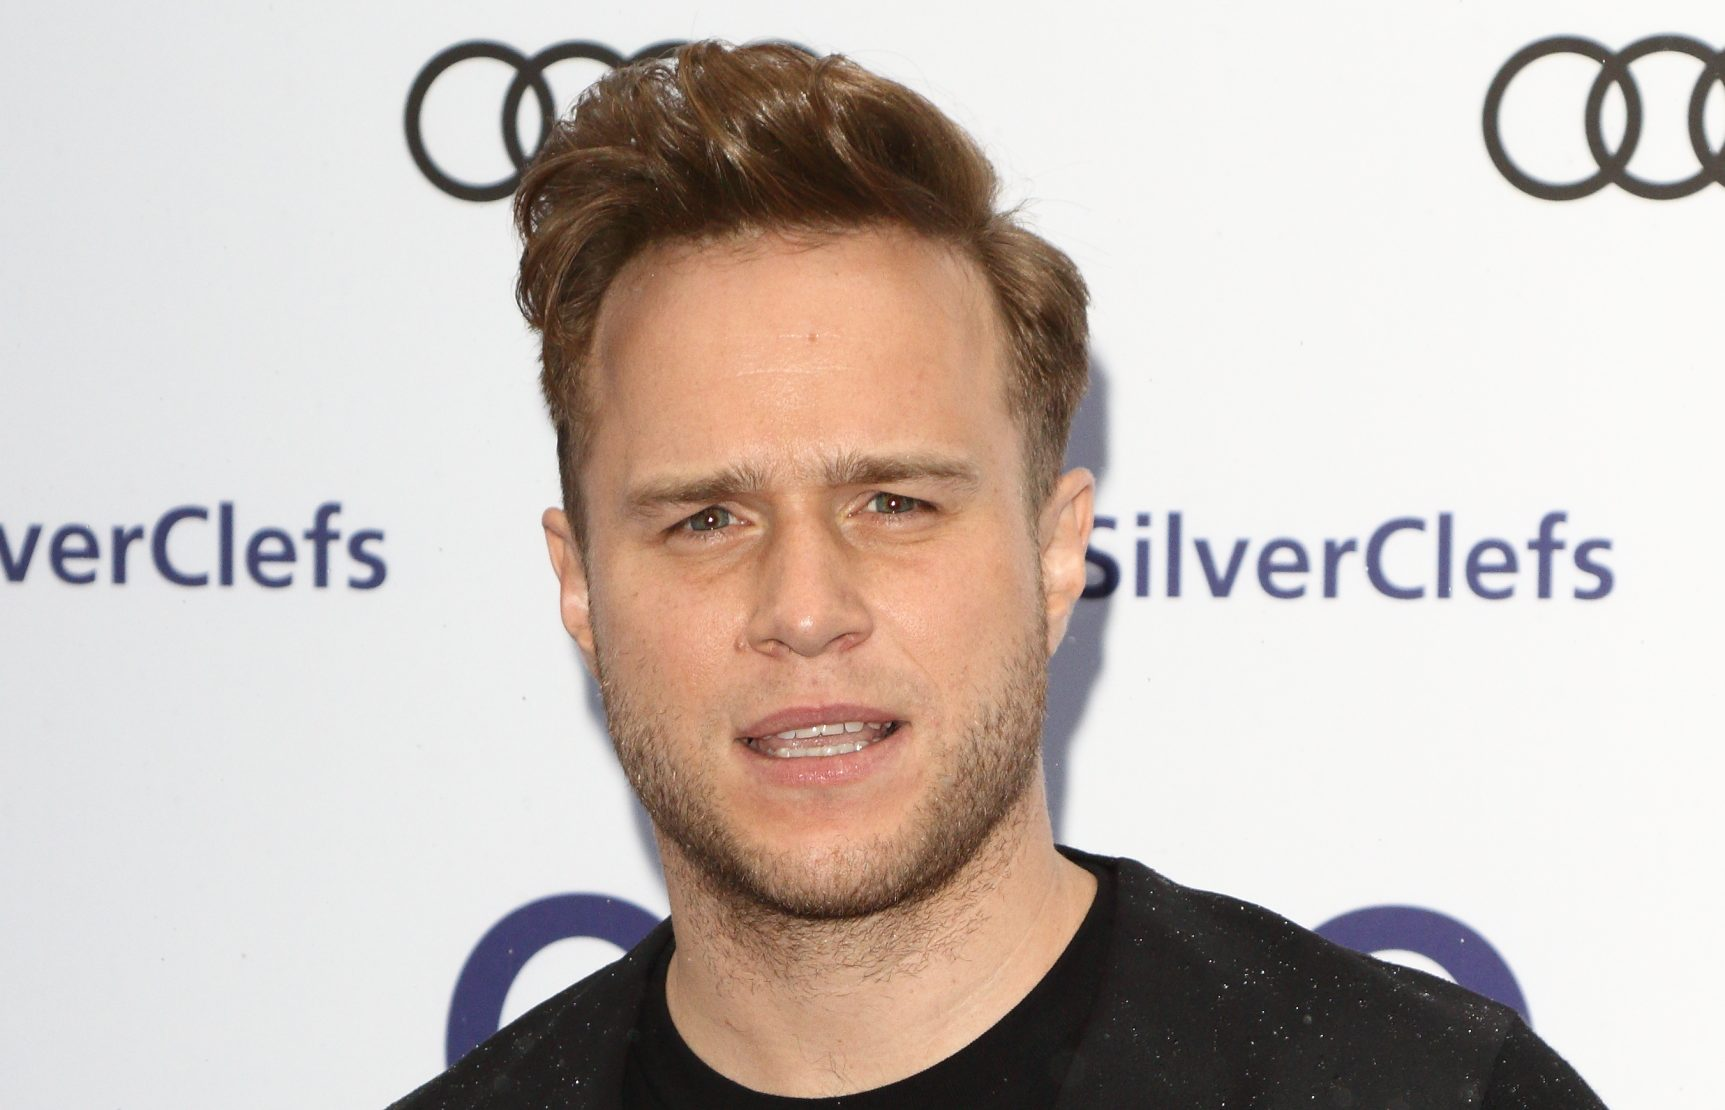 Olly Murs addresses rumoured feud with Simon Cowell over his new Voice role